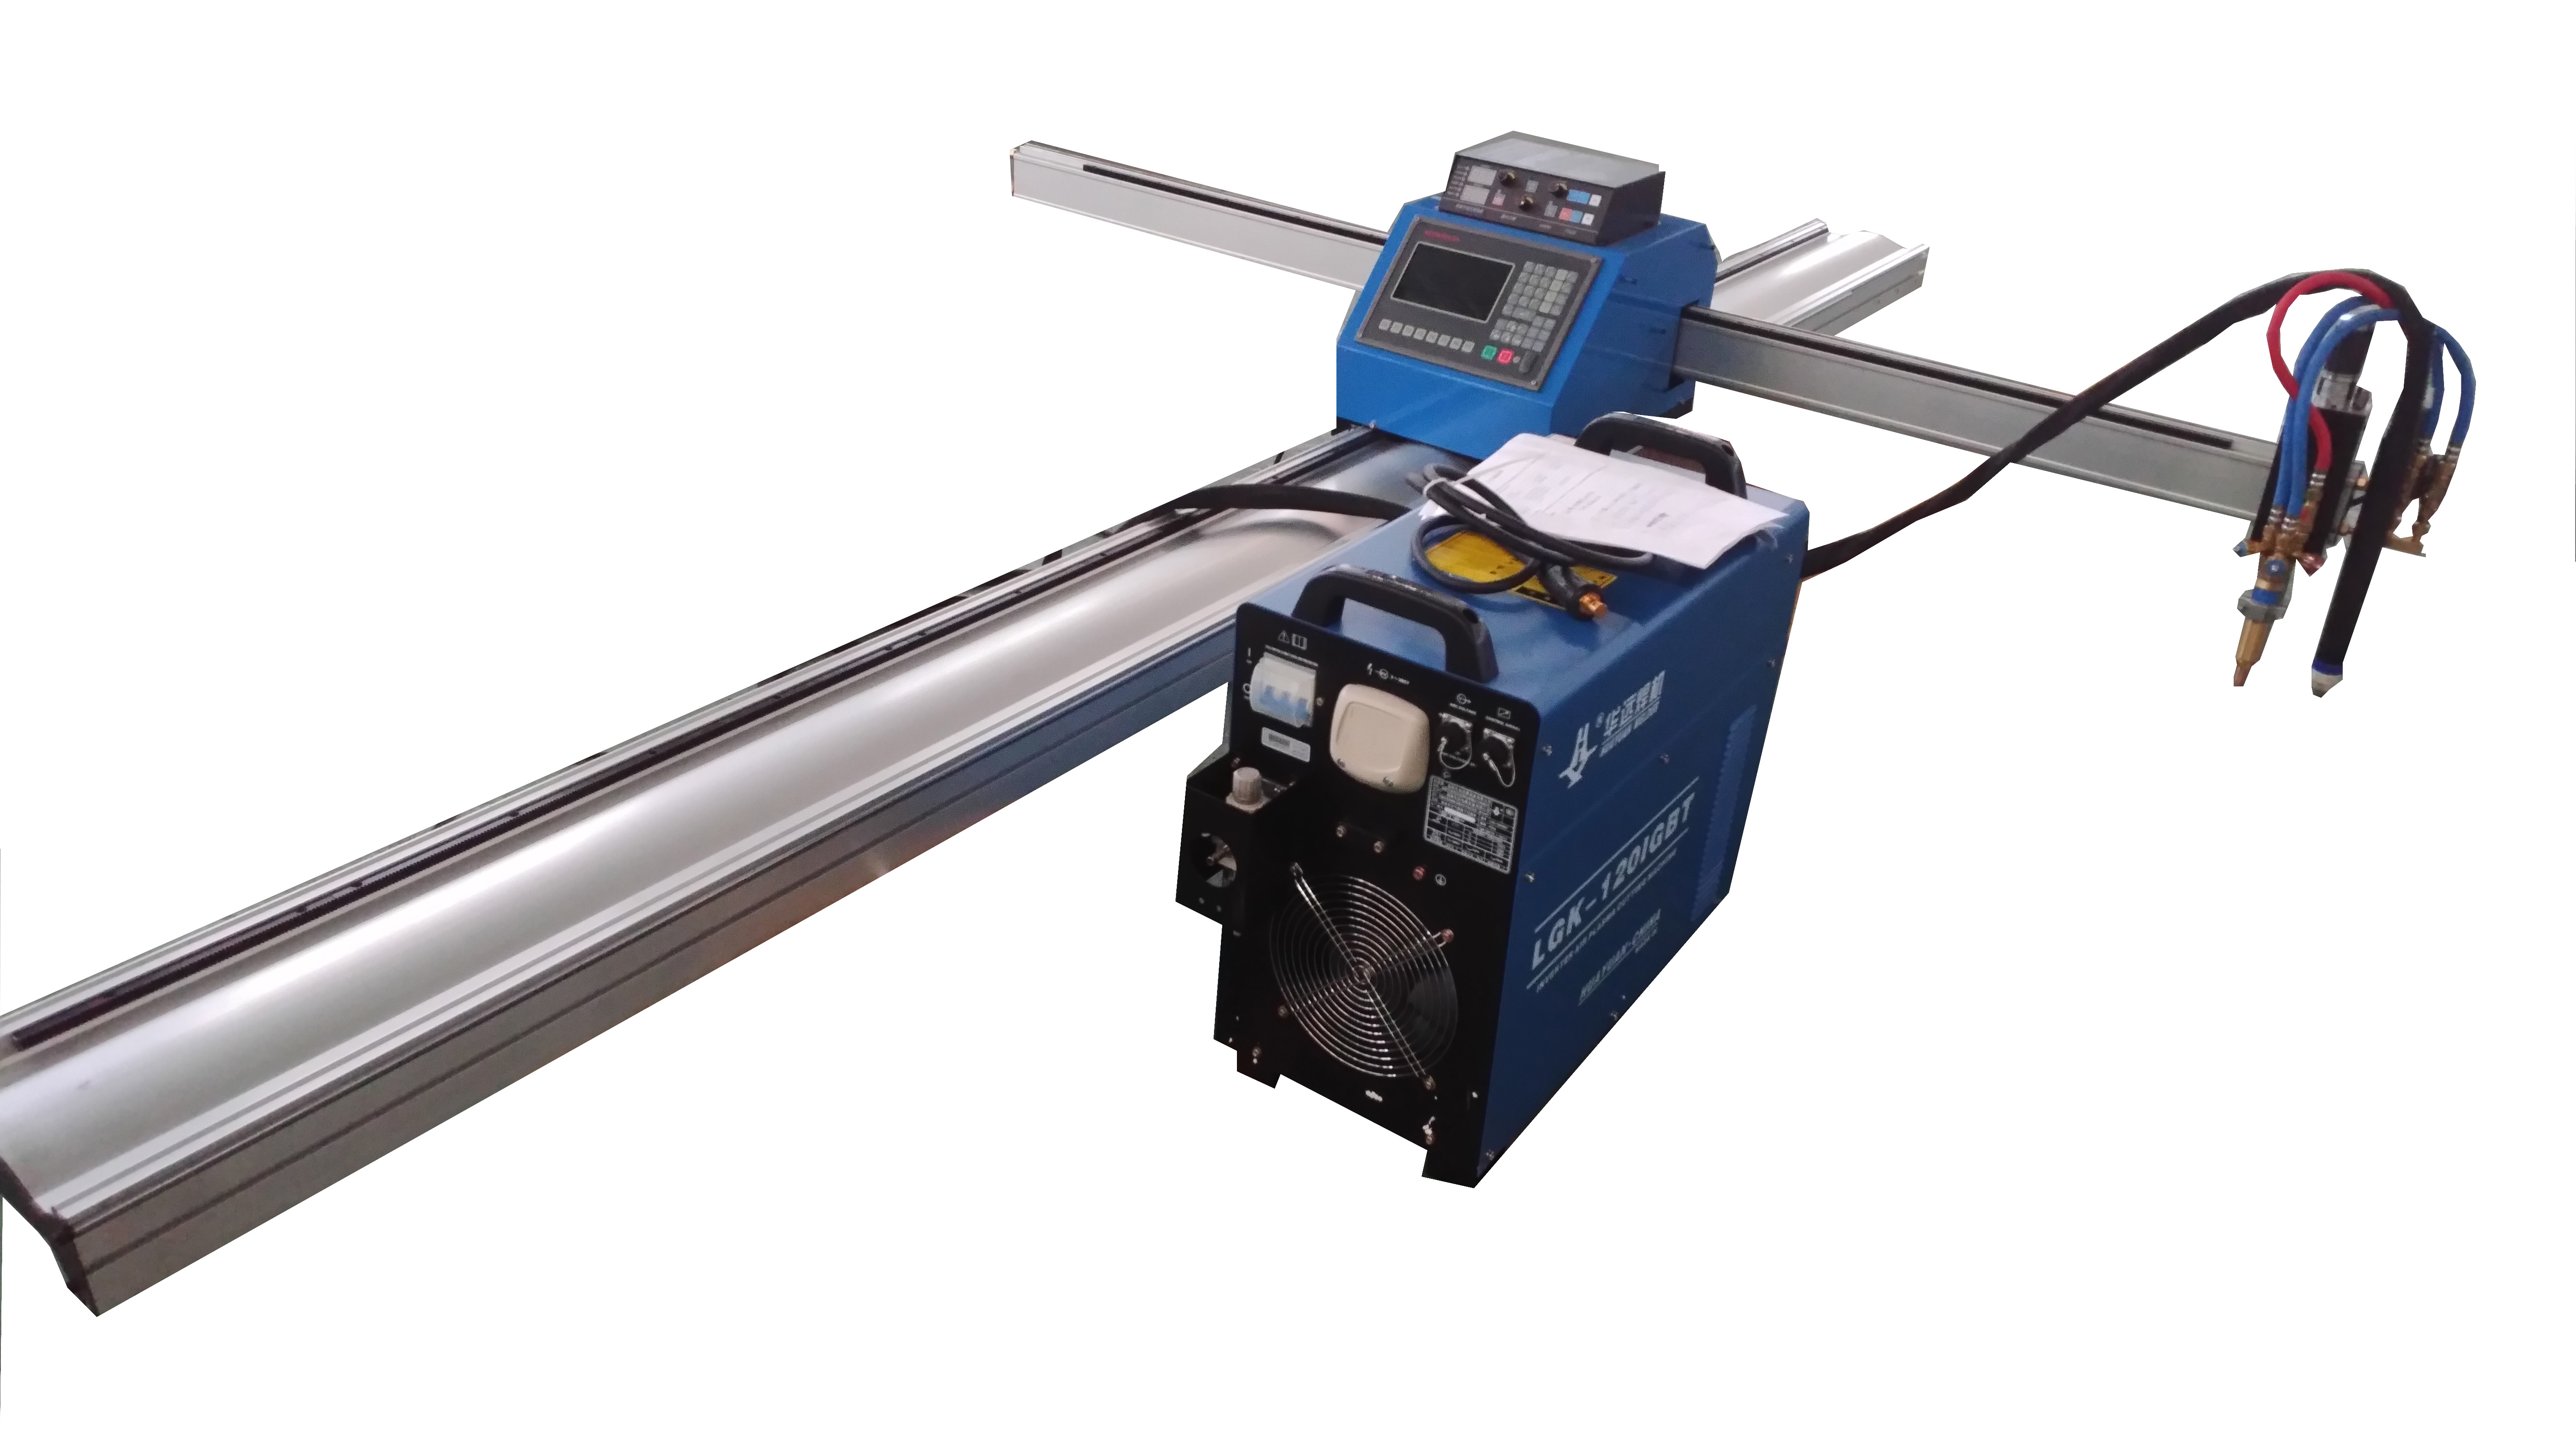 CNC Metal Portable Plasma cutter (plasma cutting machine)with Flame Cutting Torch